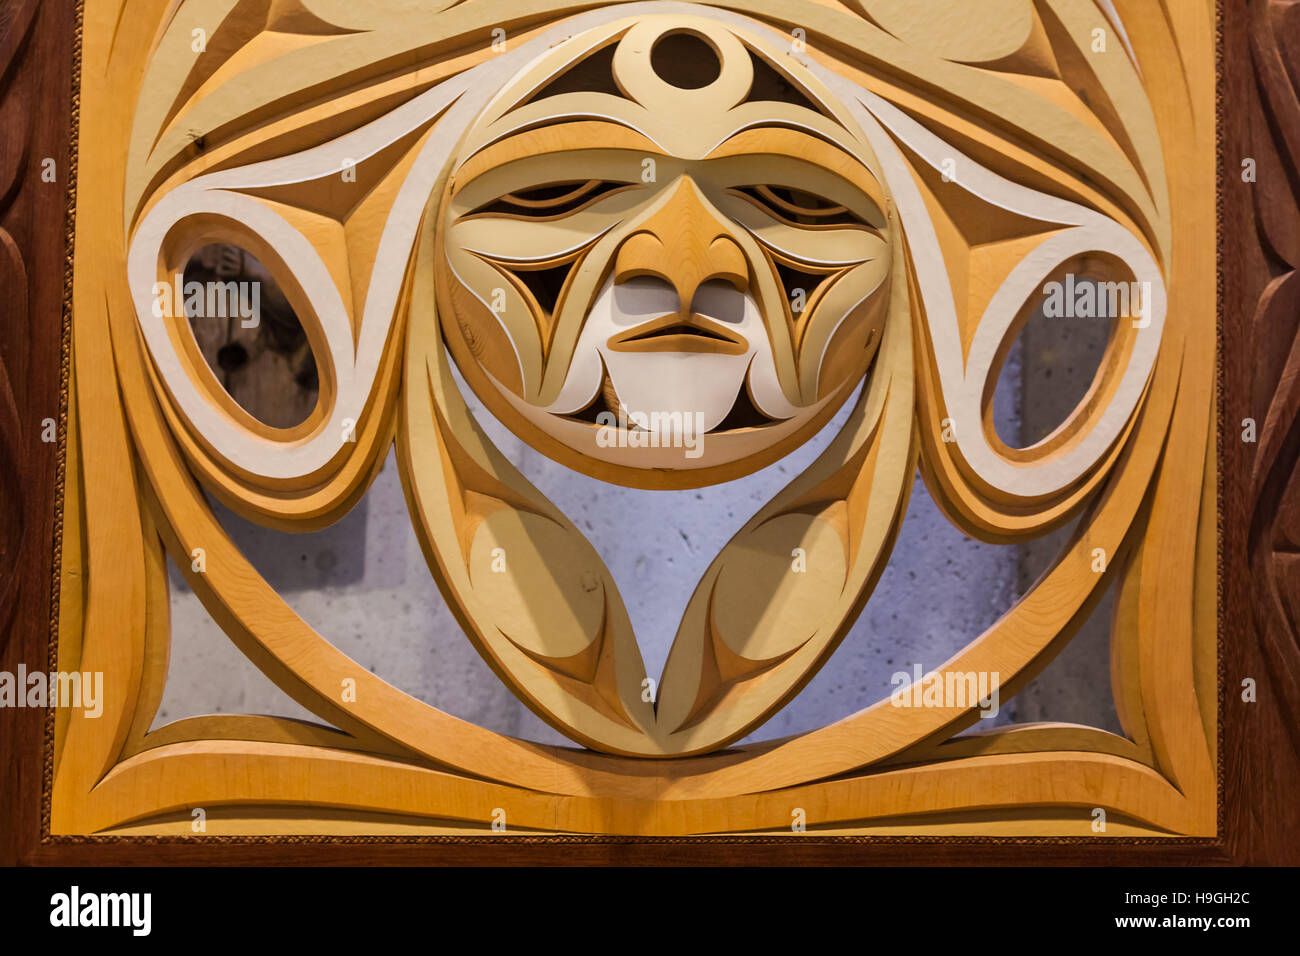 Carved wooden screen of Canadian west coast First Nation's art - Stock Image